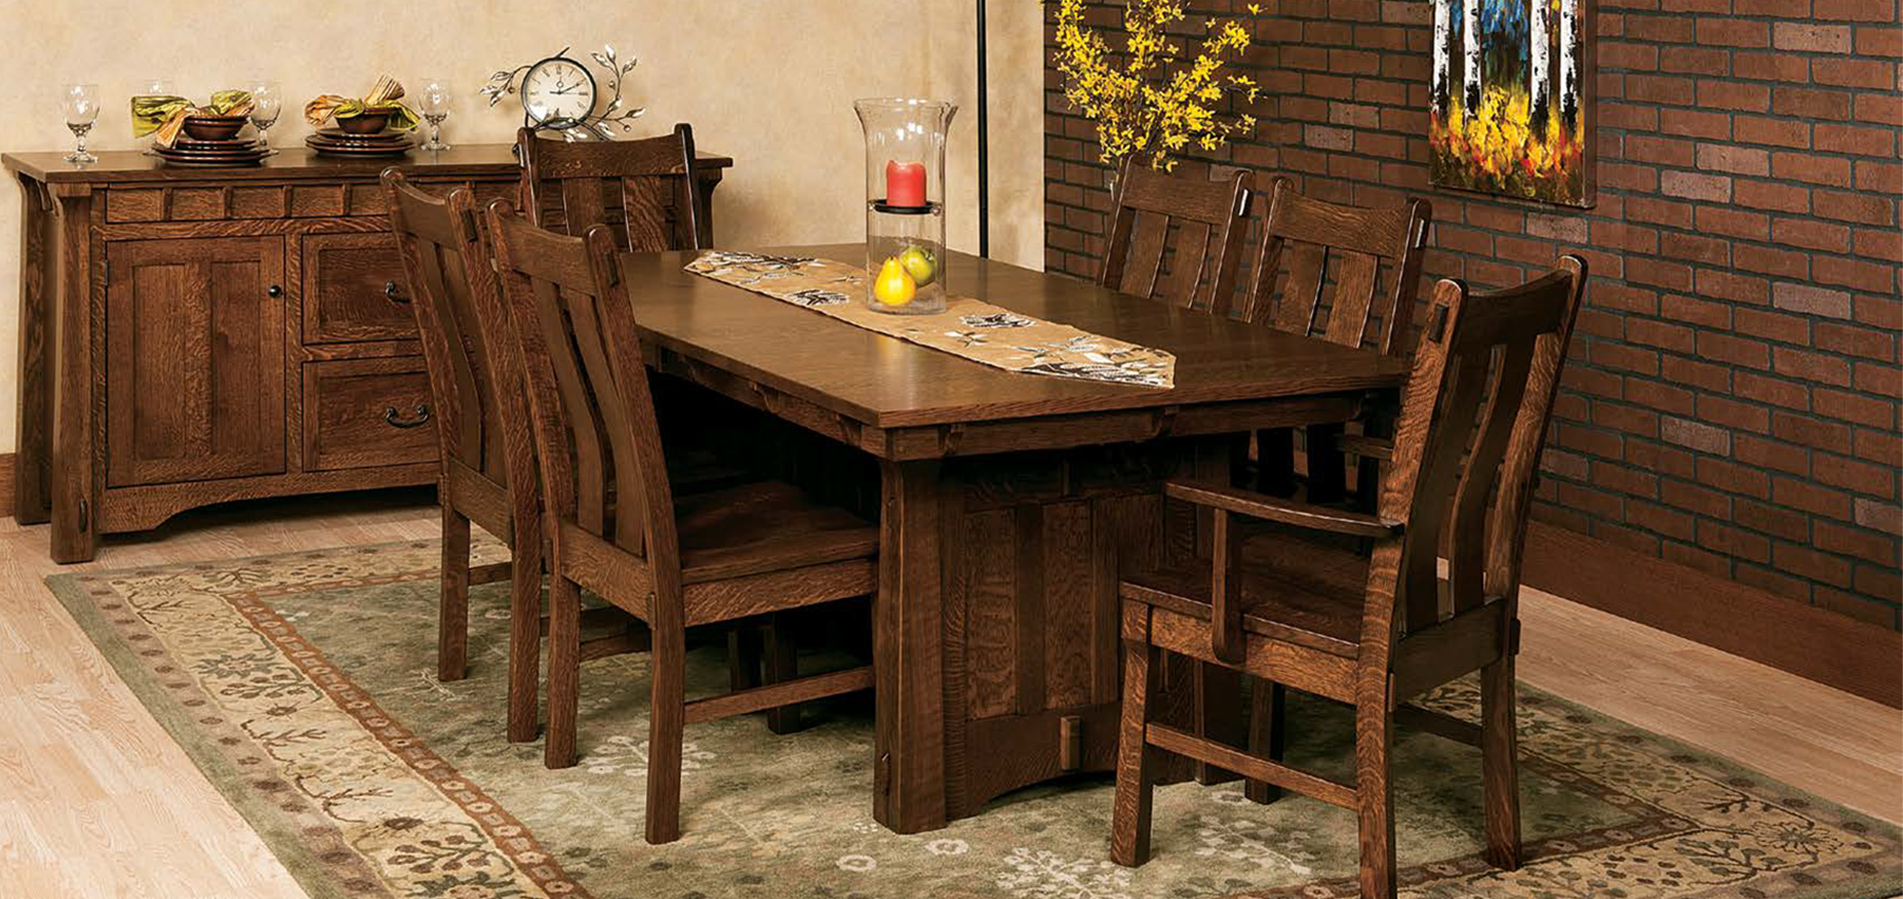 2017-west-point-woodworking-beaumont-dining-1903-x-899-3.jpg